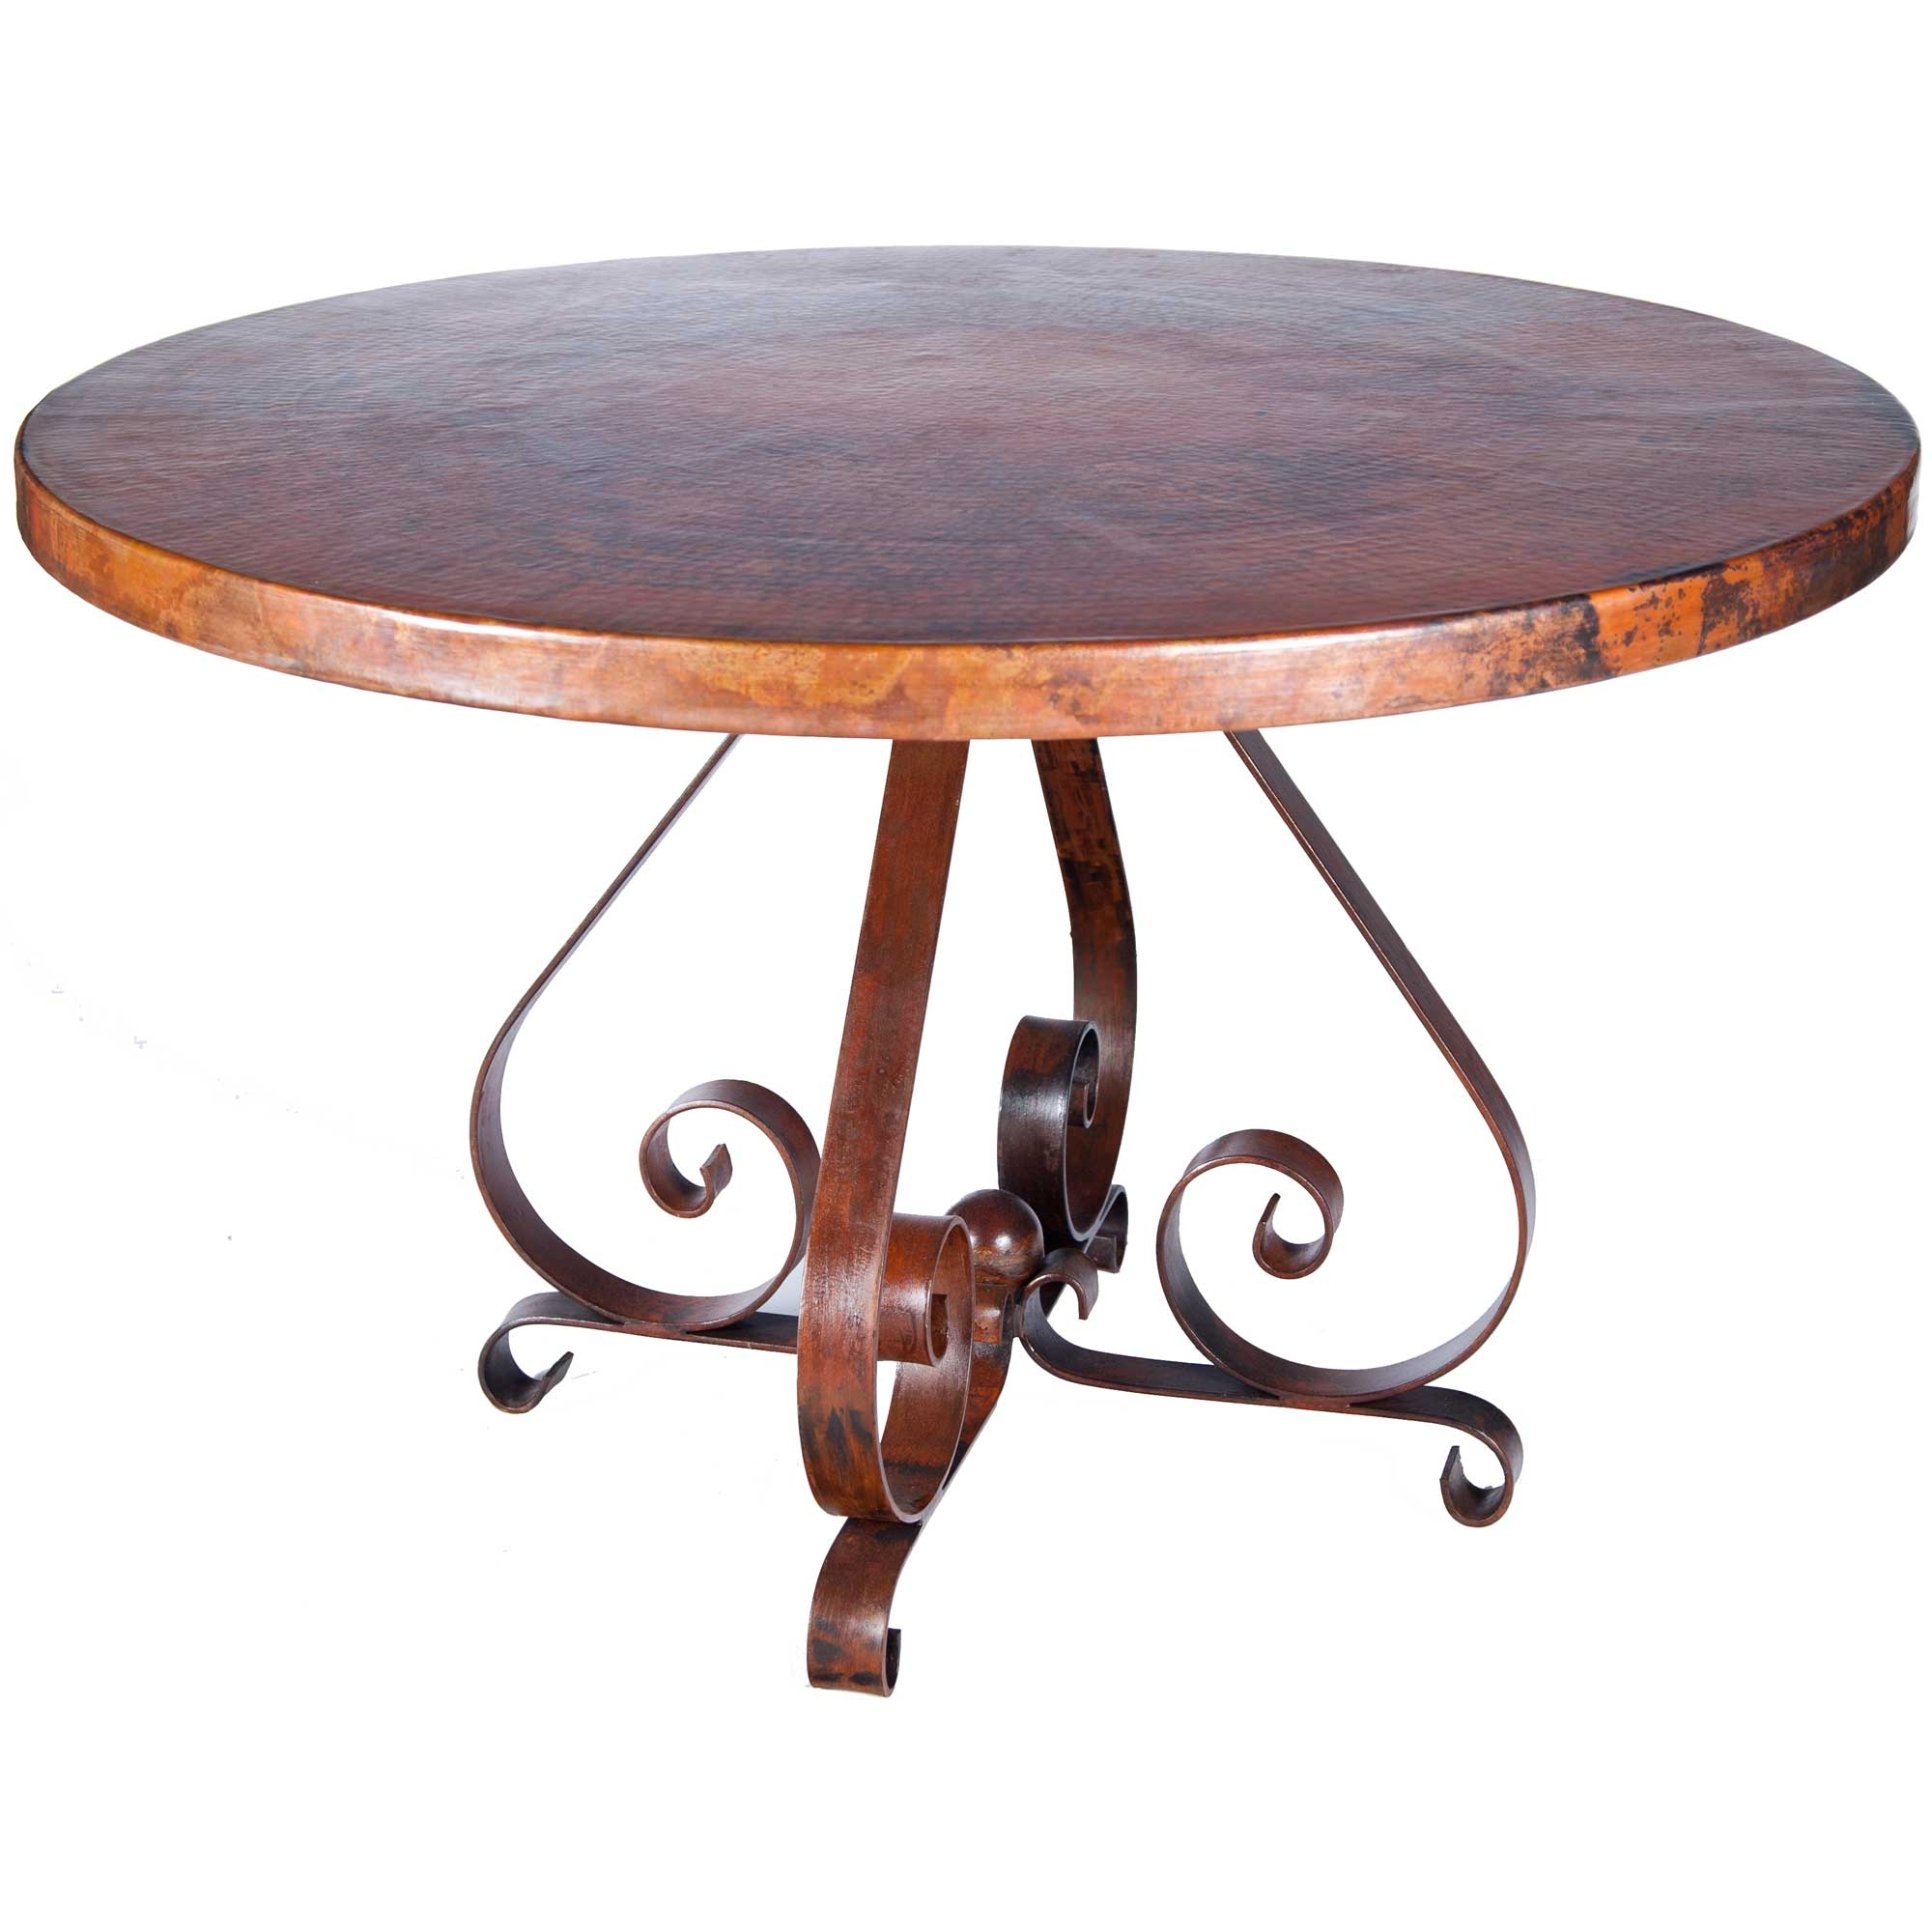 Pictured Here Is The Pierre Dining Table With Wrought Iron Base And 54 Round Hammered